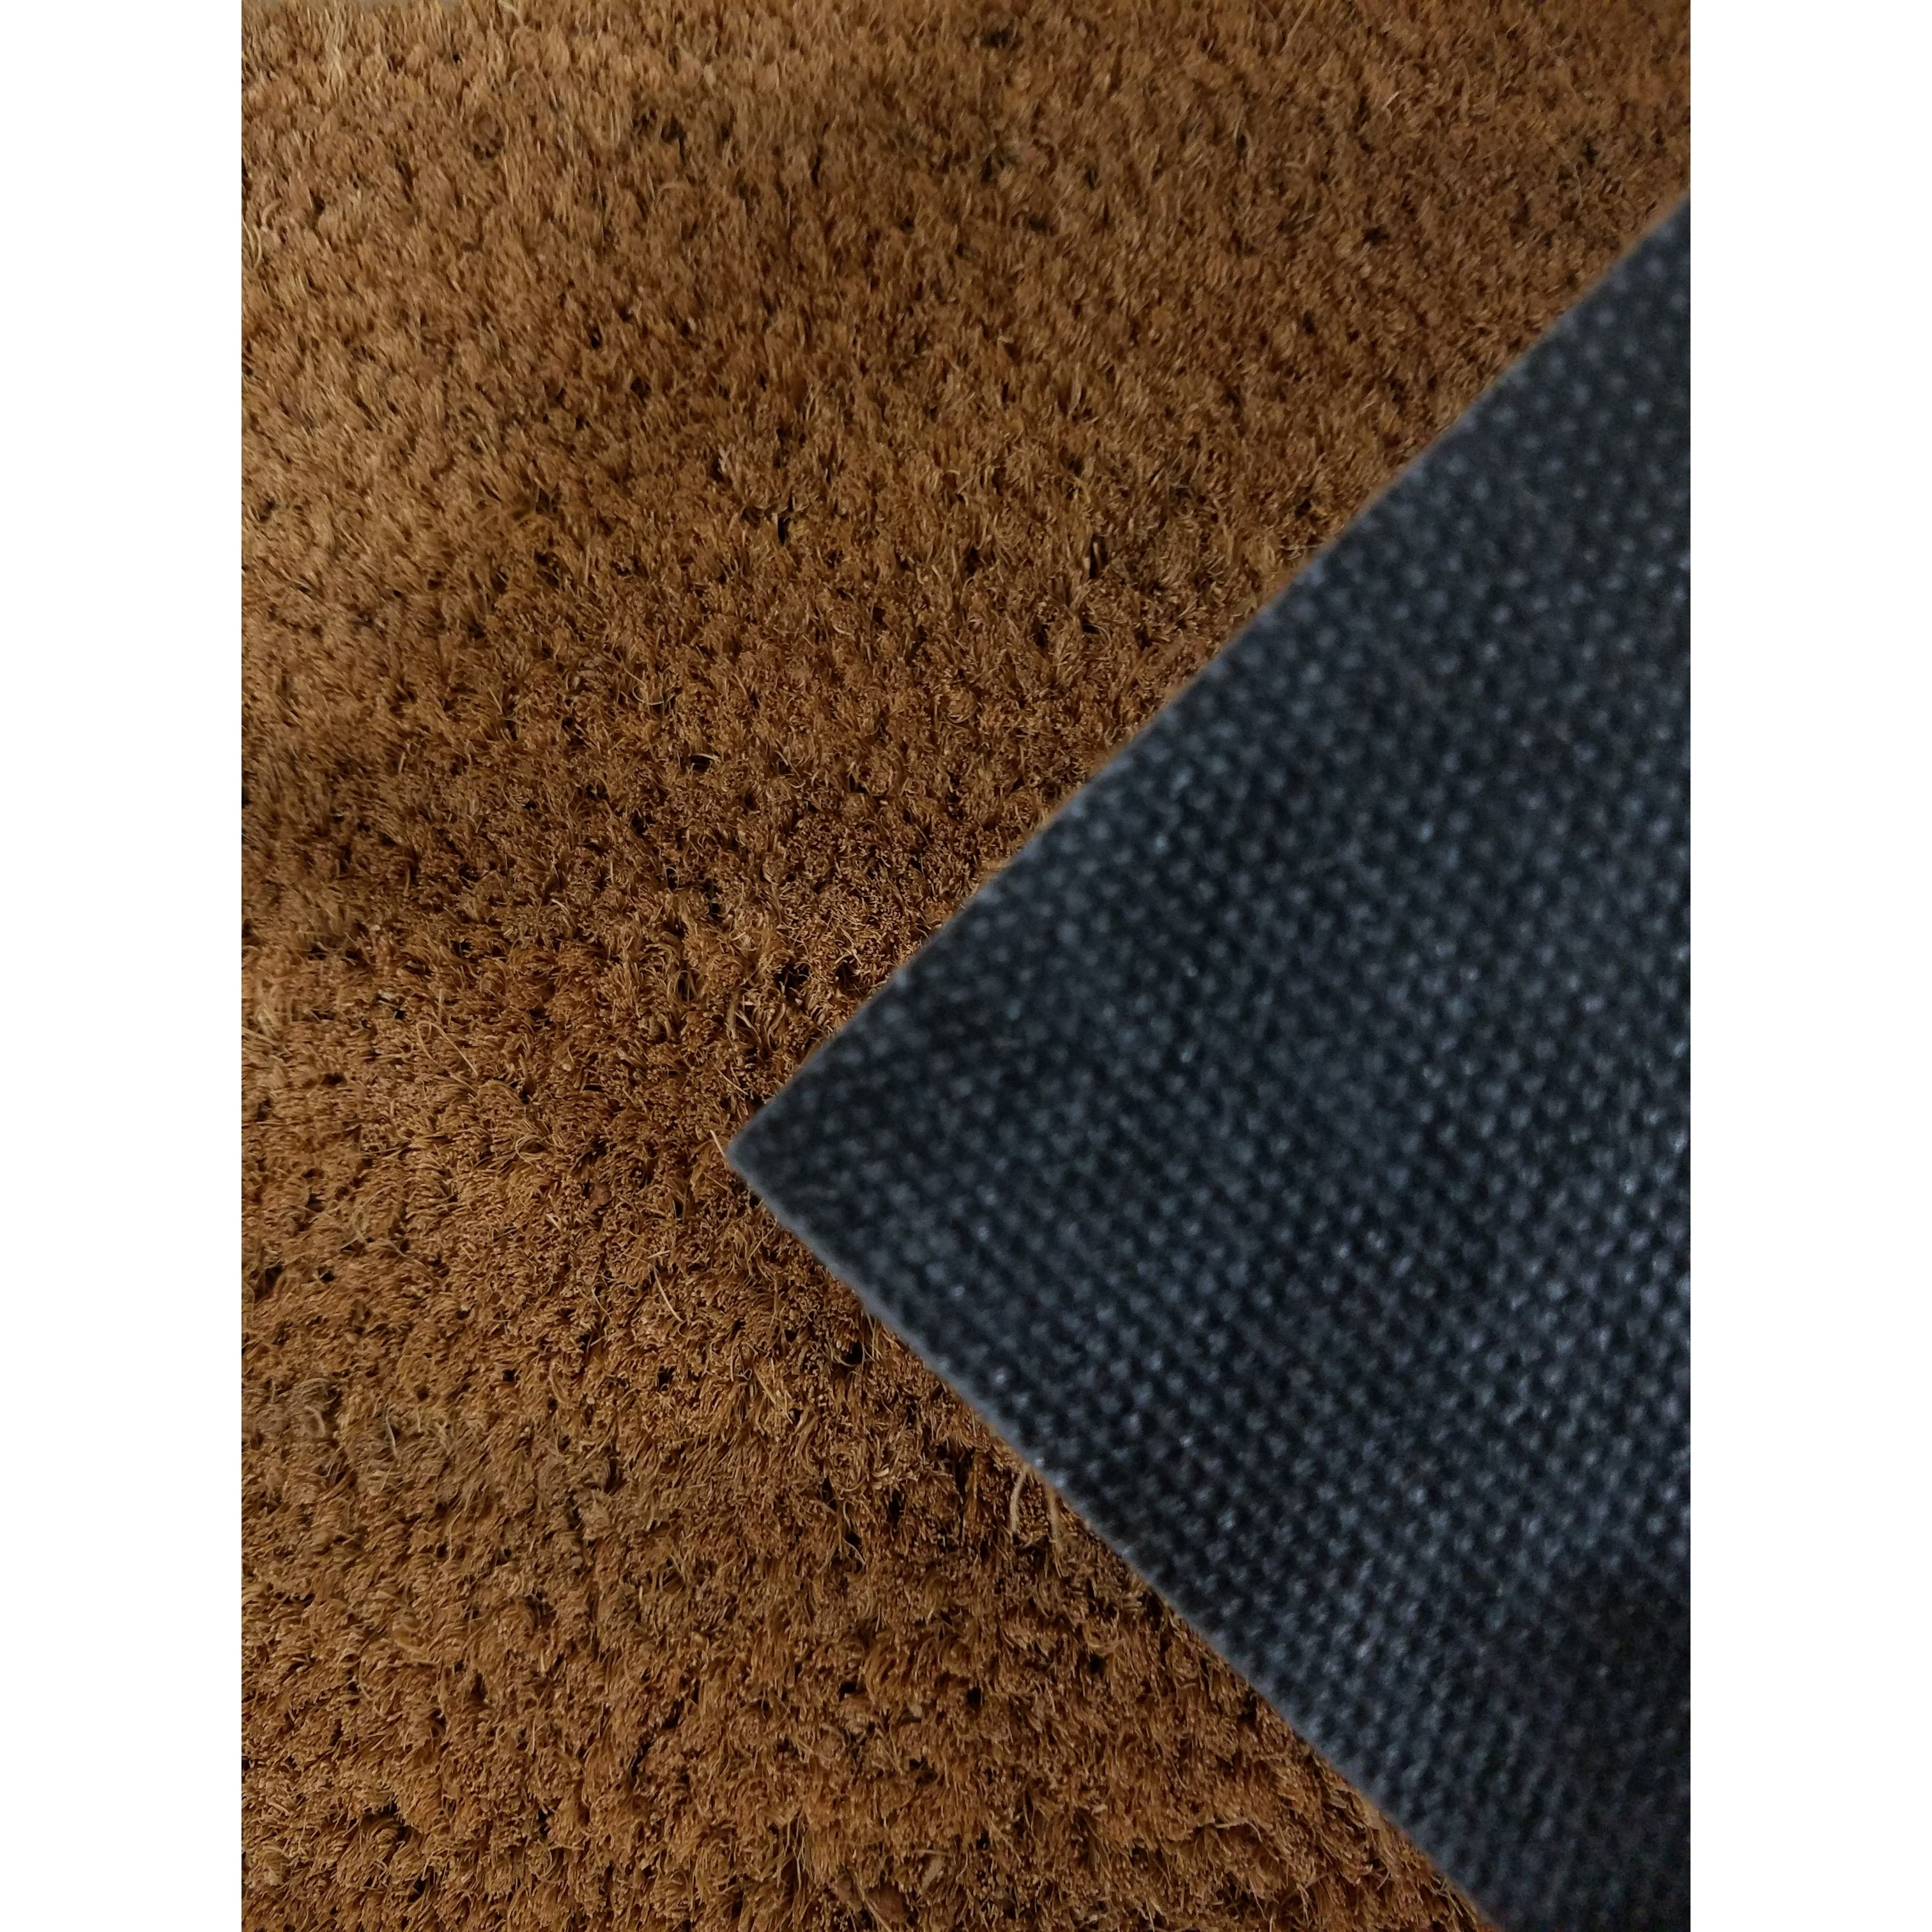 home overstock evideco garden front sheltered coir printed large mat shipping door inch orders bye hello over rug on product mats coco free fibers black